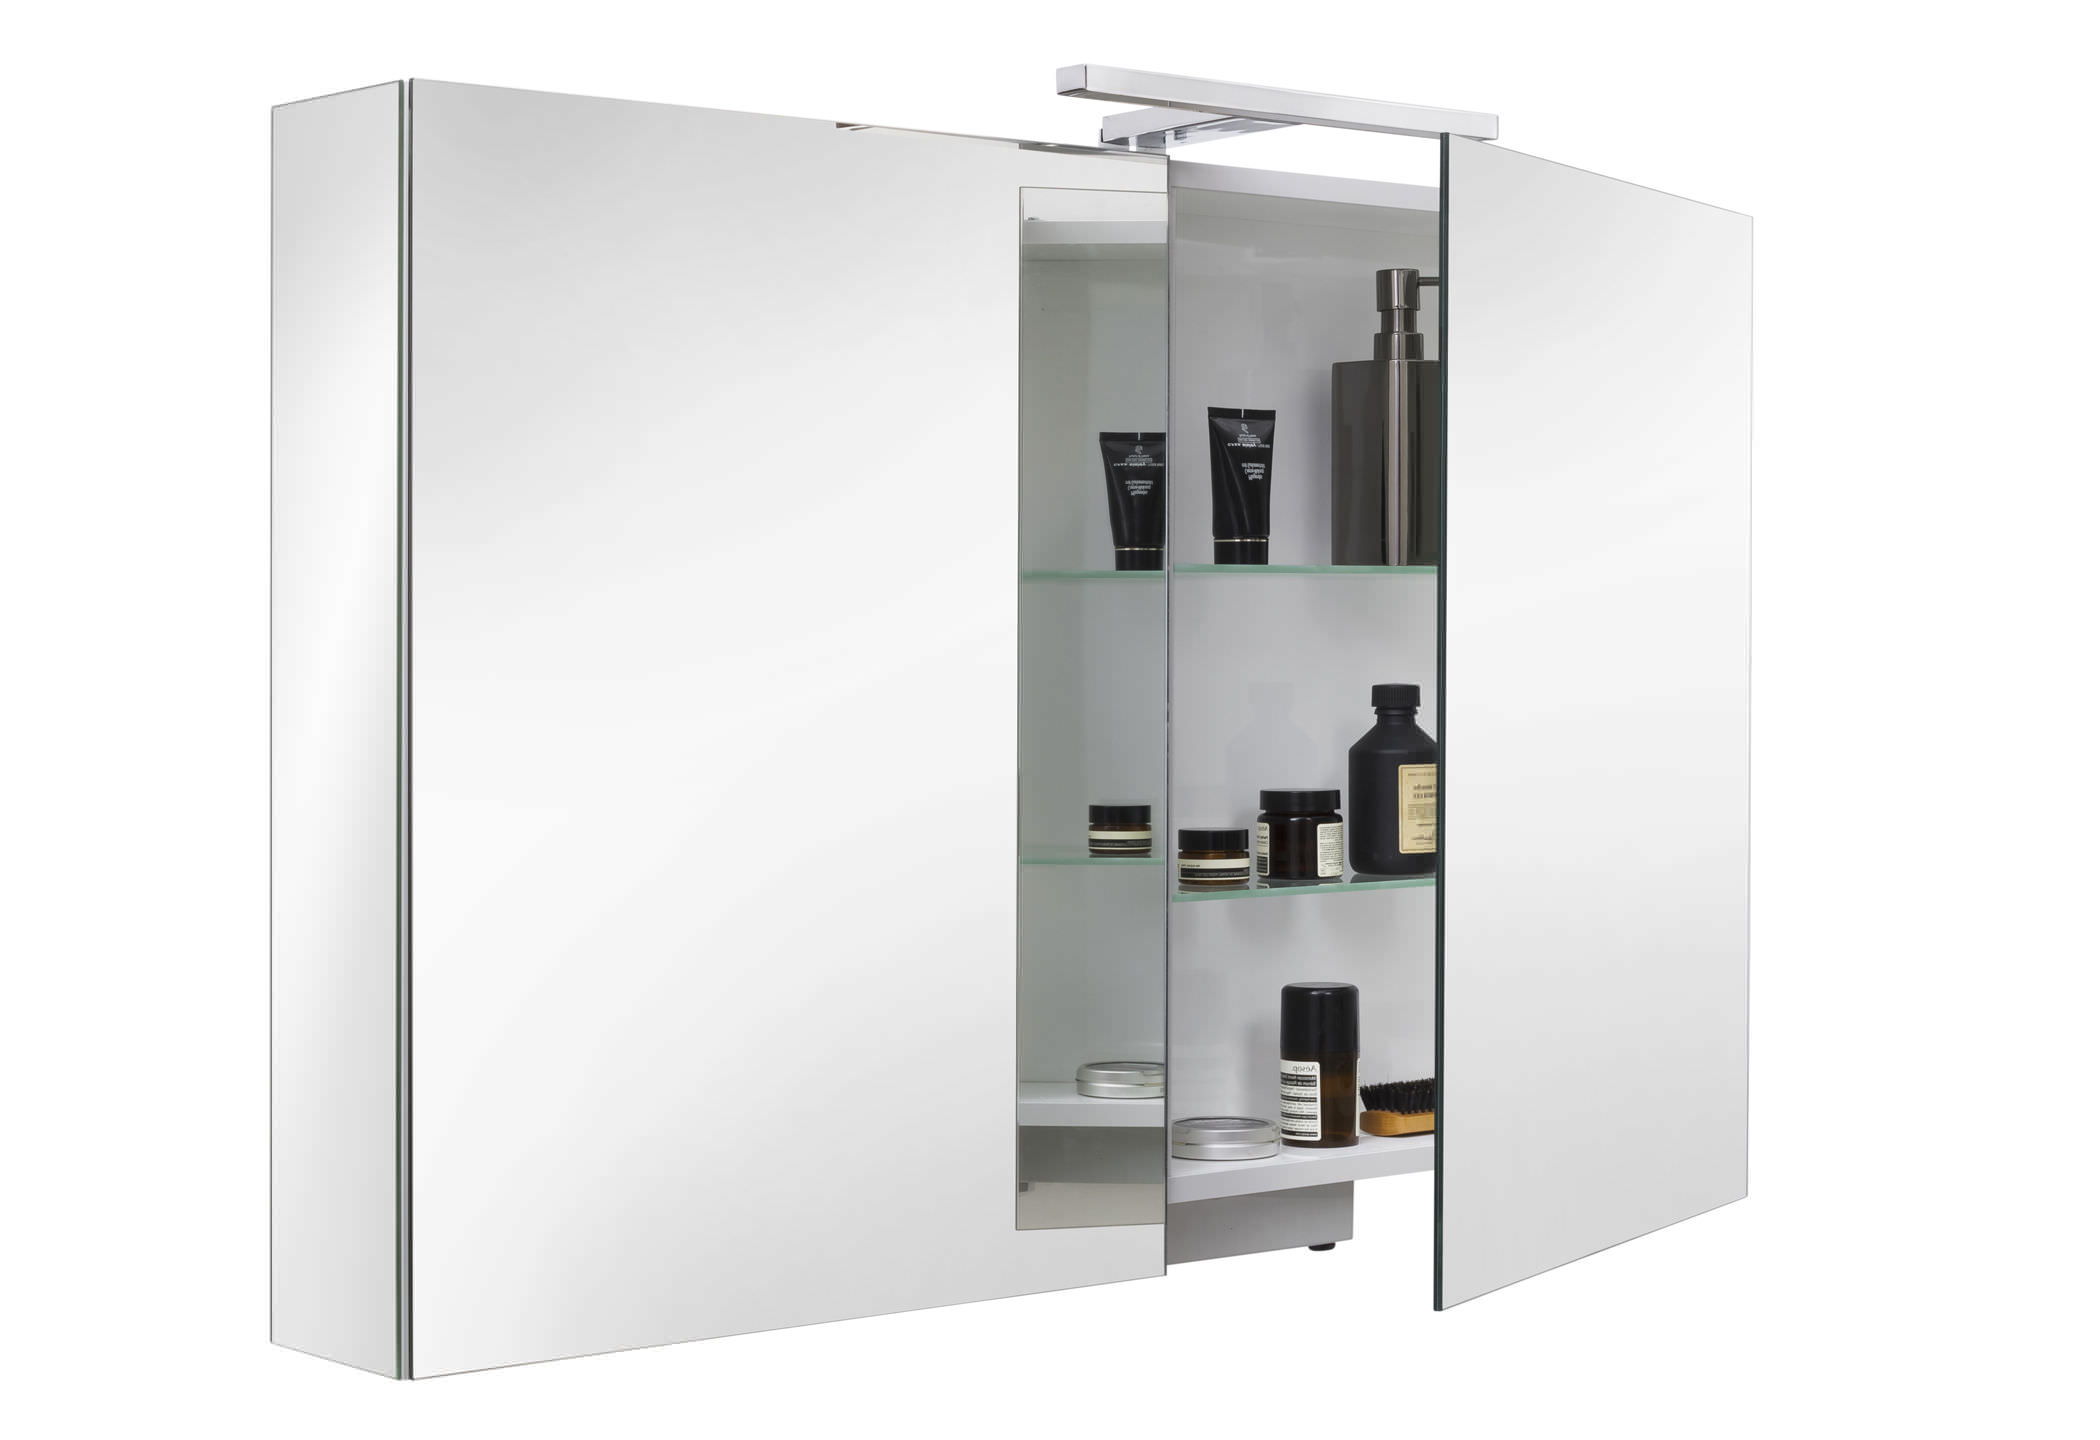 bathroom box  mirrored bathroom wall cabinet ice box sanijura